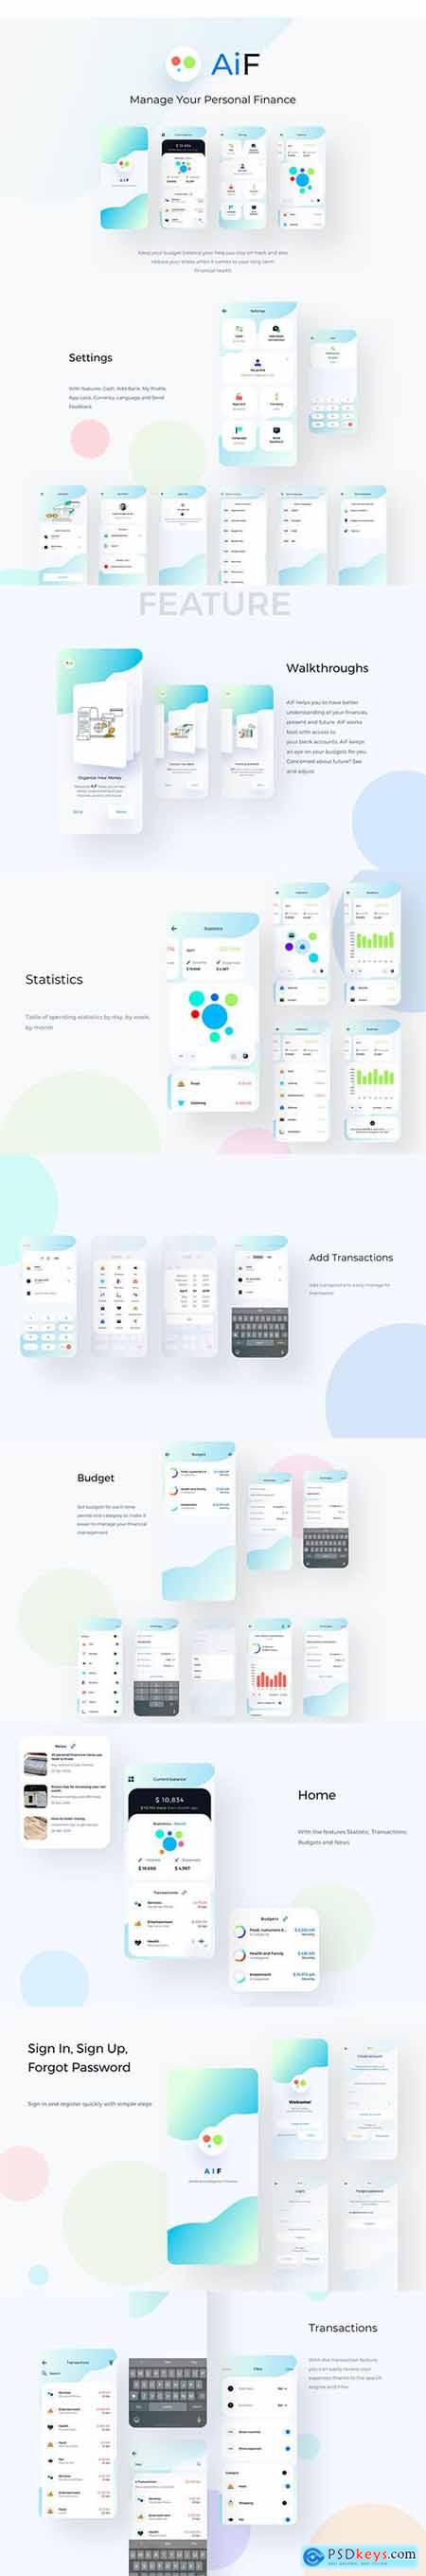 AiF Ai Finance Mobile App